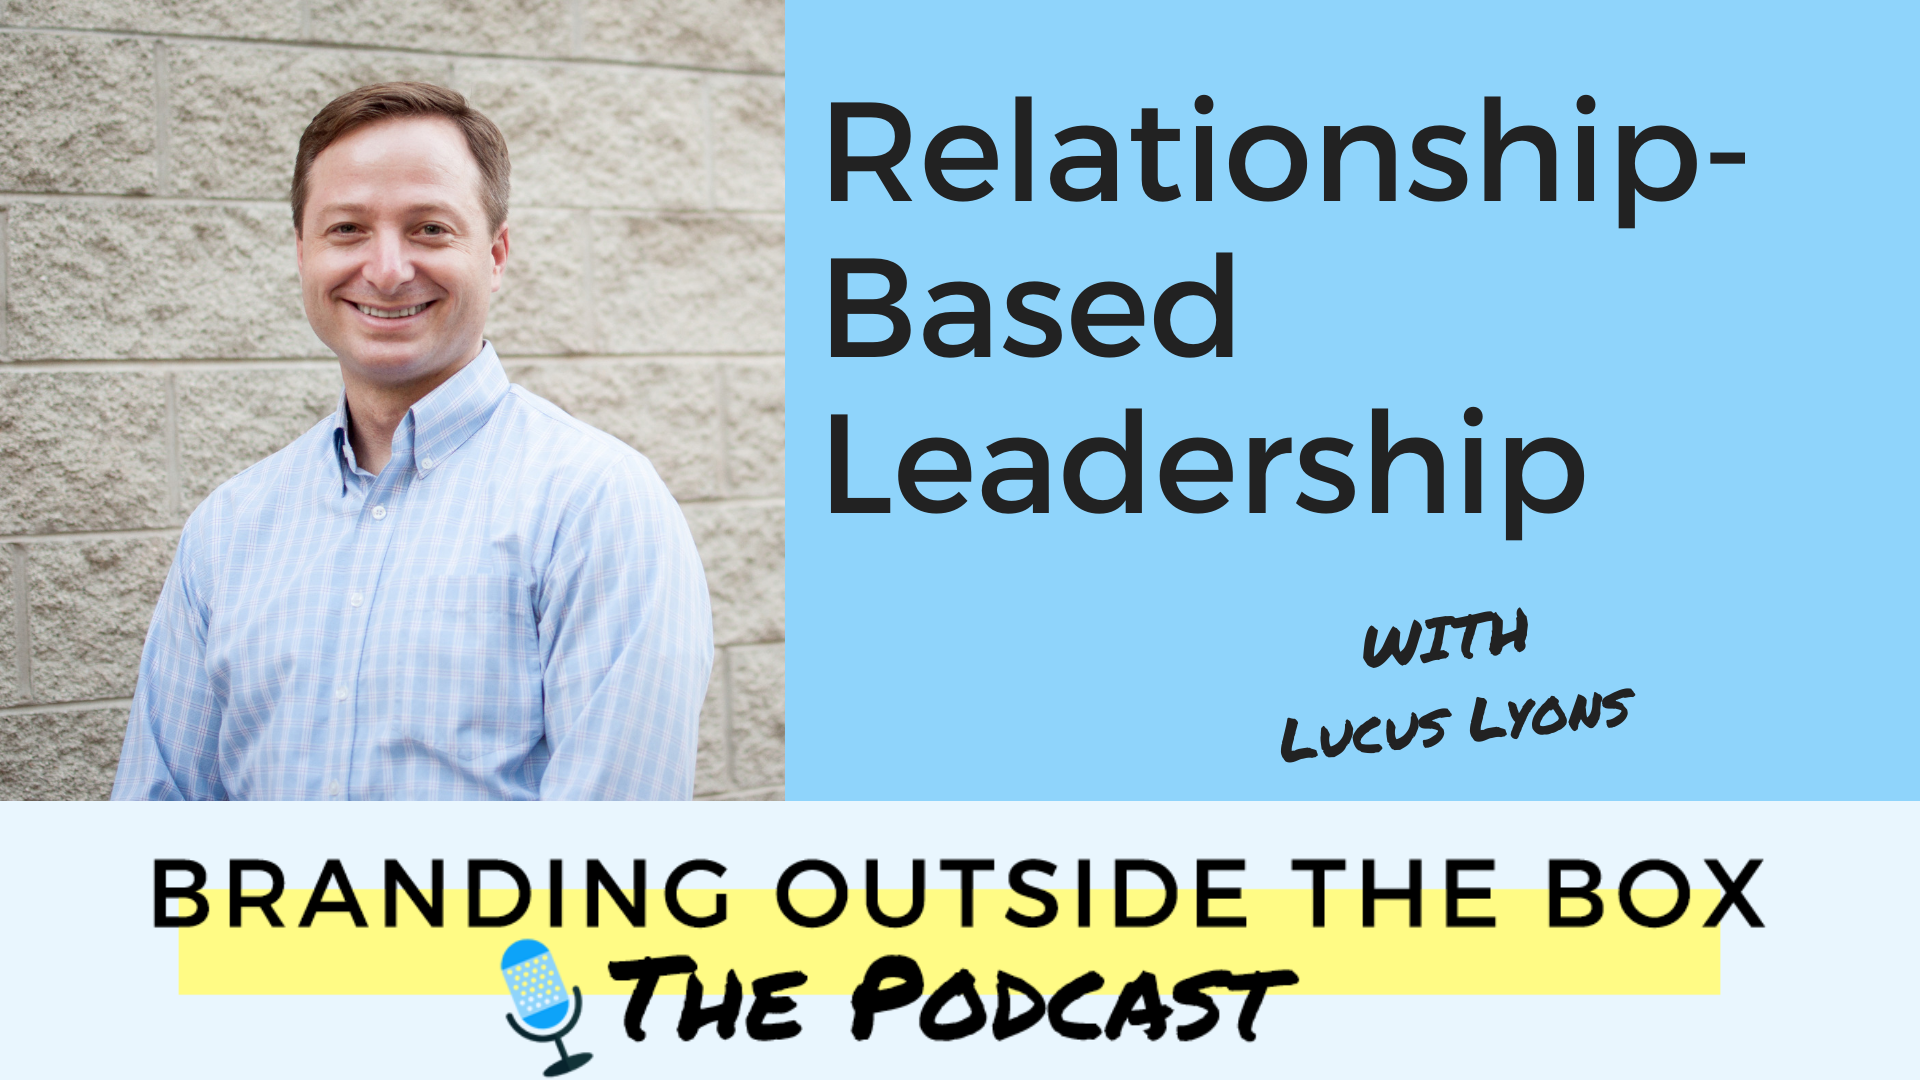 Relationship-Based Leadership